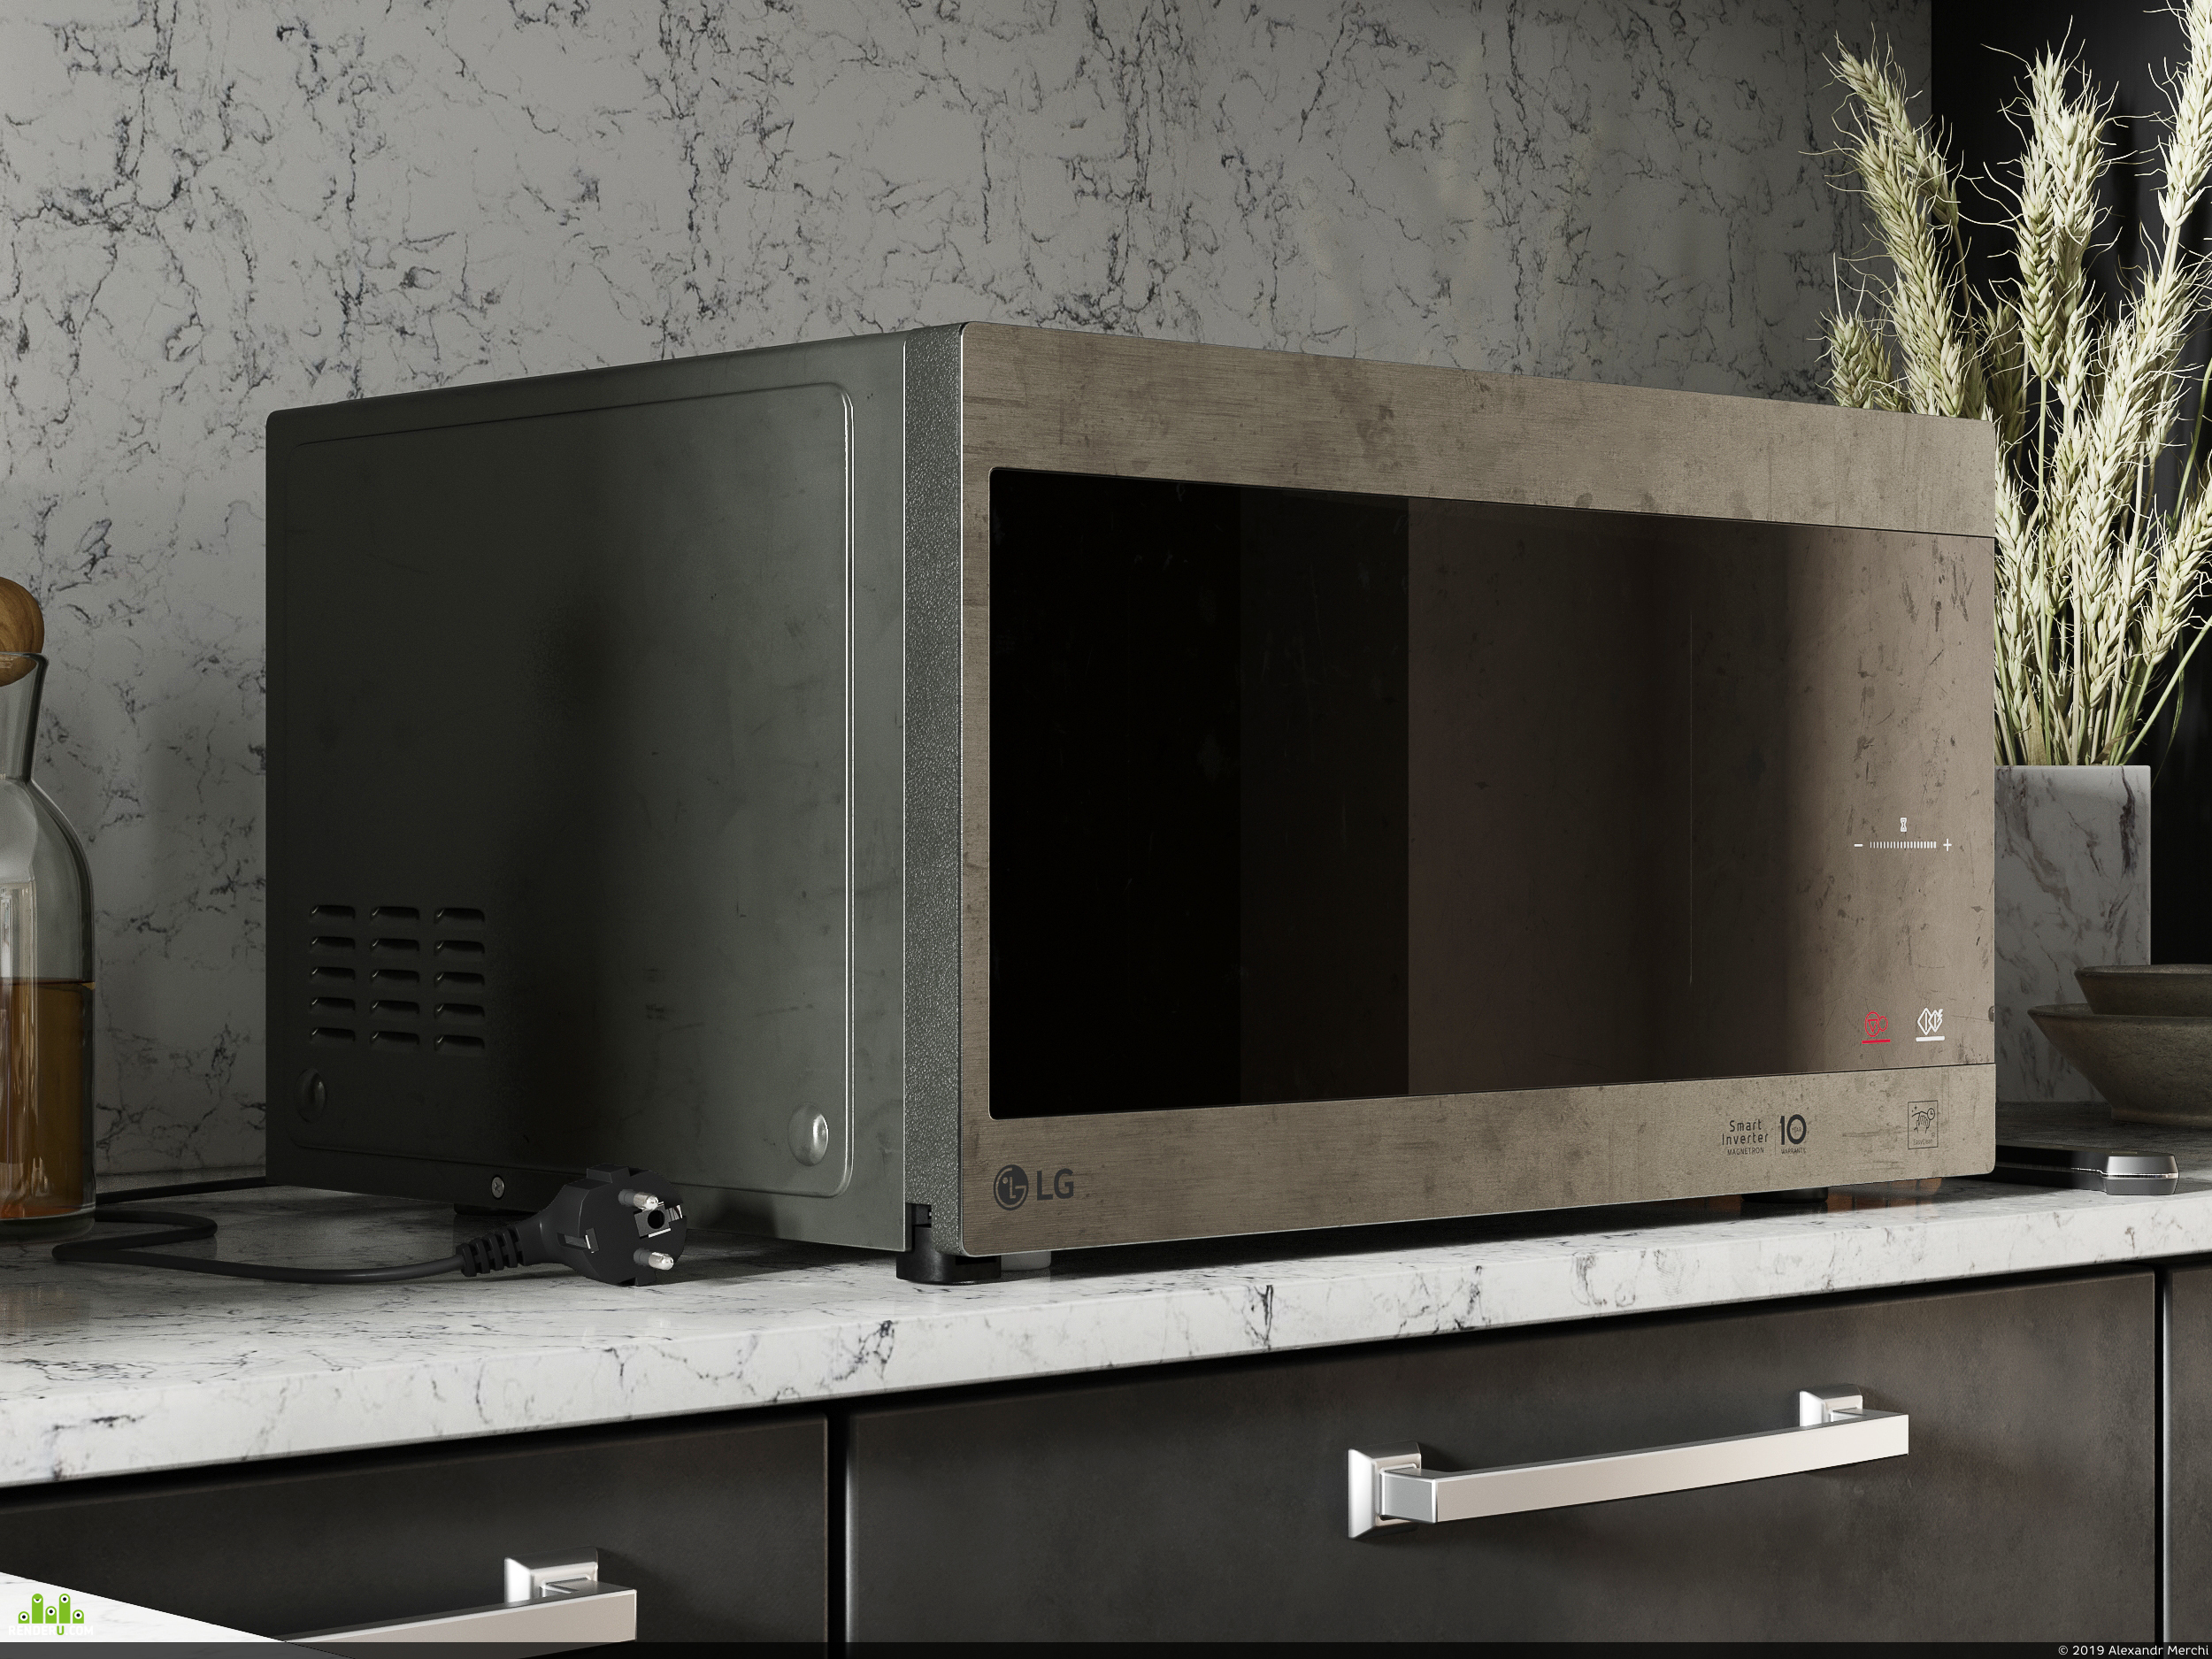 preview Microwave oven